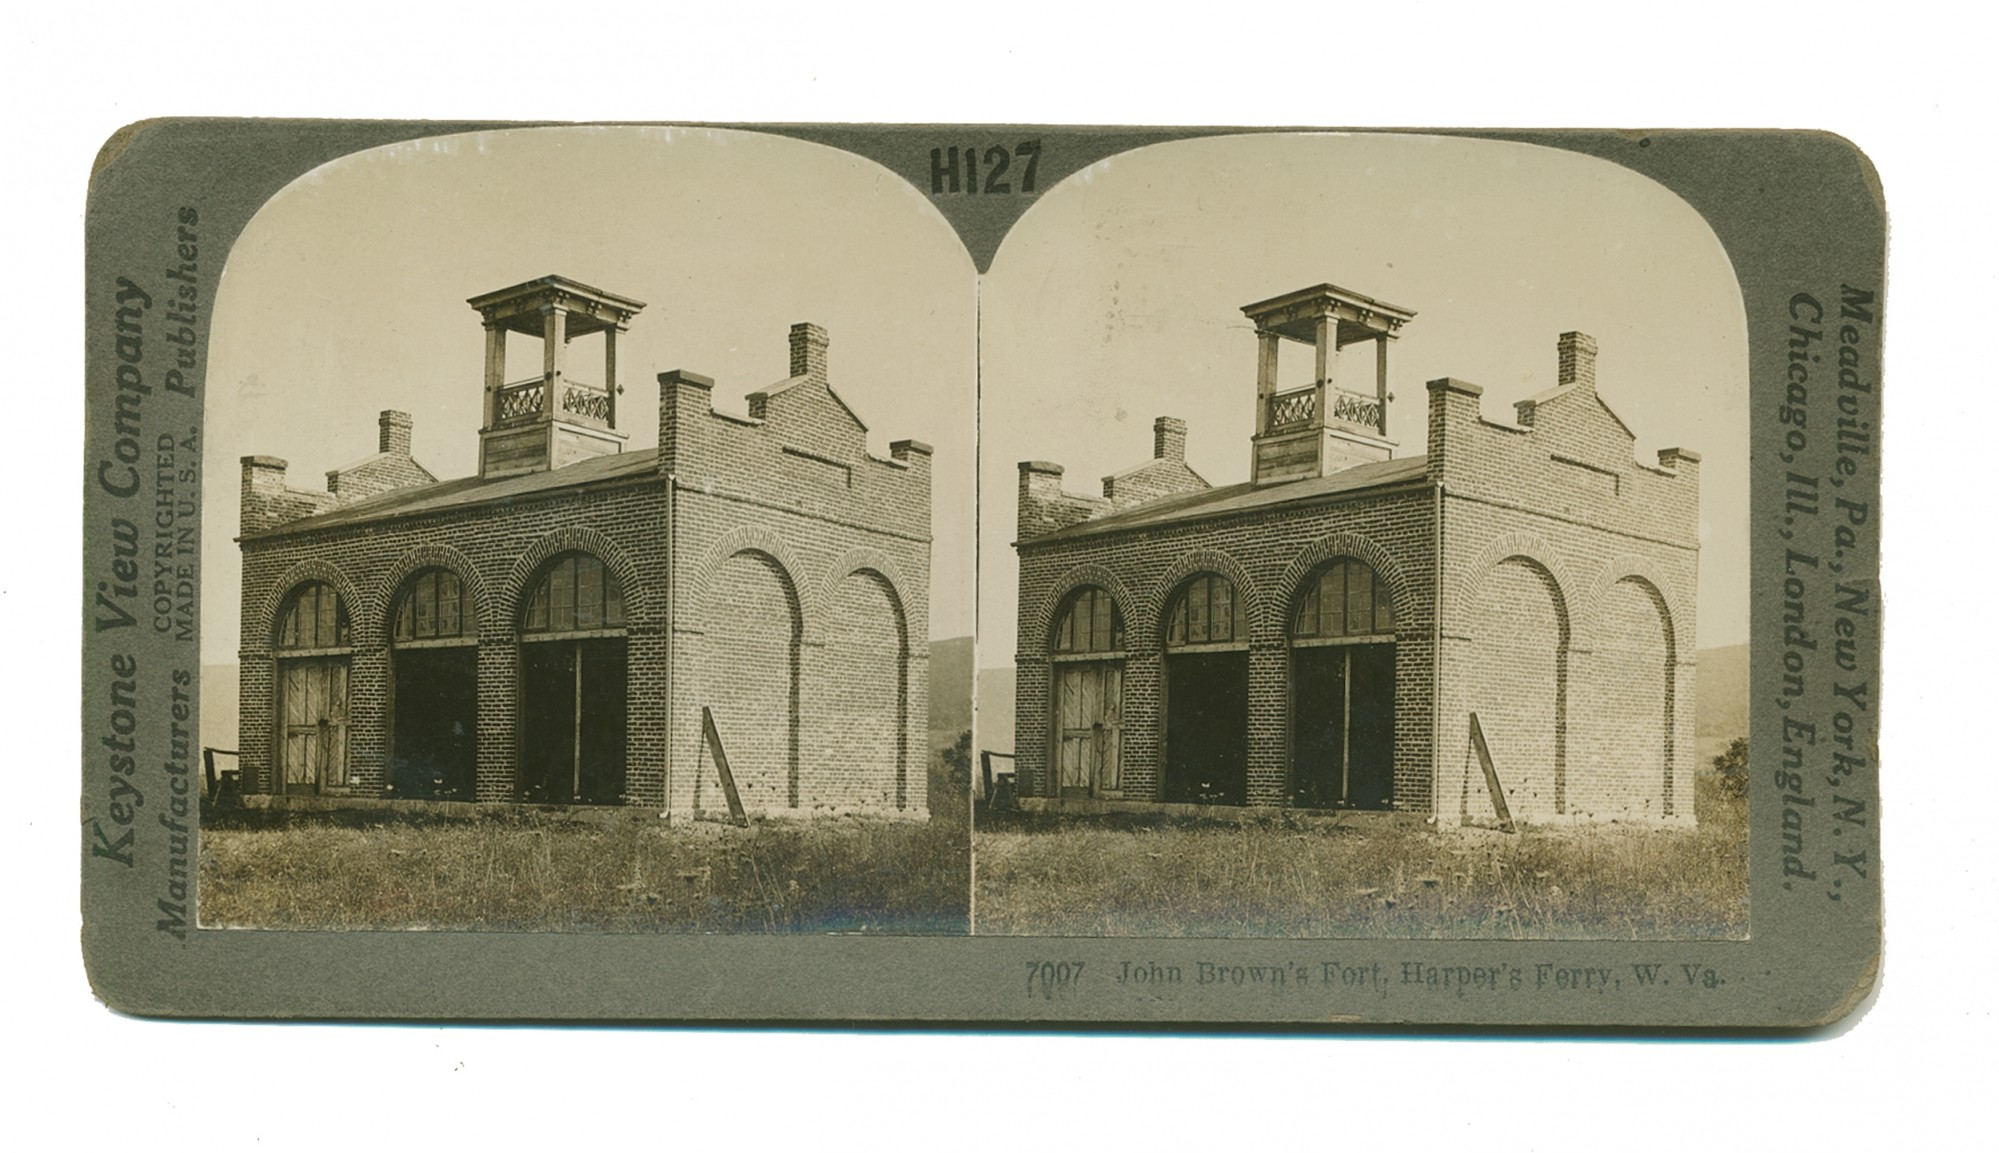 KEYSTONE COMPANY STEREO VIEW OF JOHN BROWN'S FORT, HARPER'S FERRY